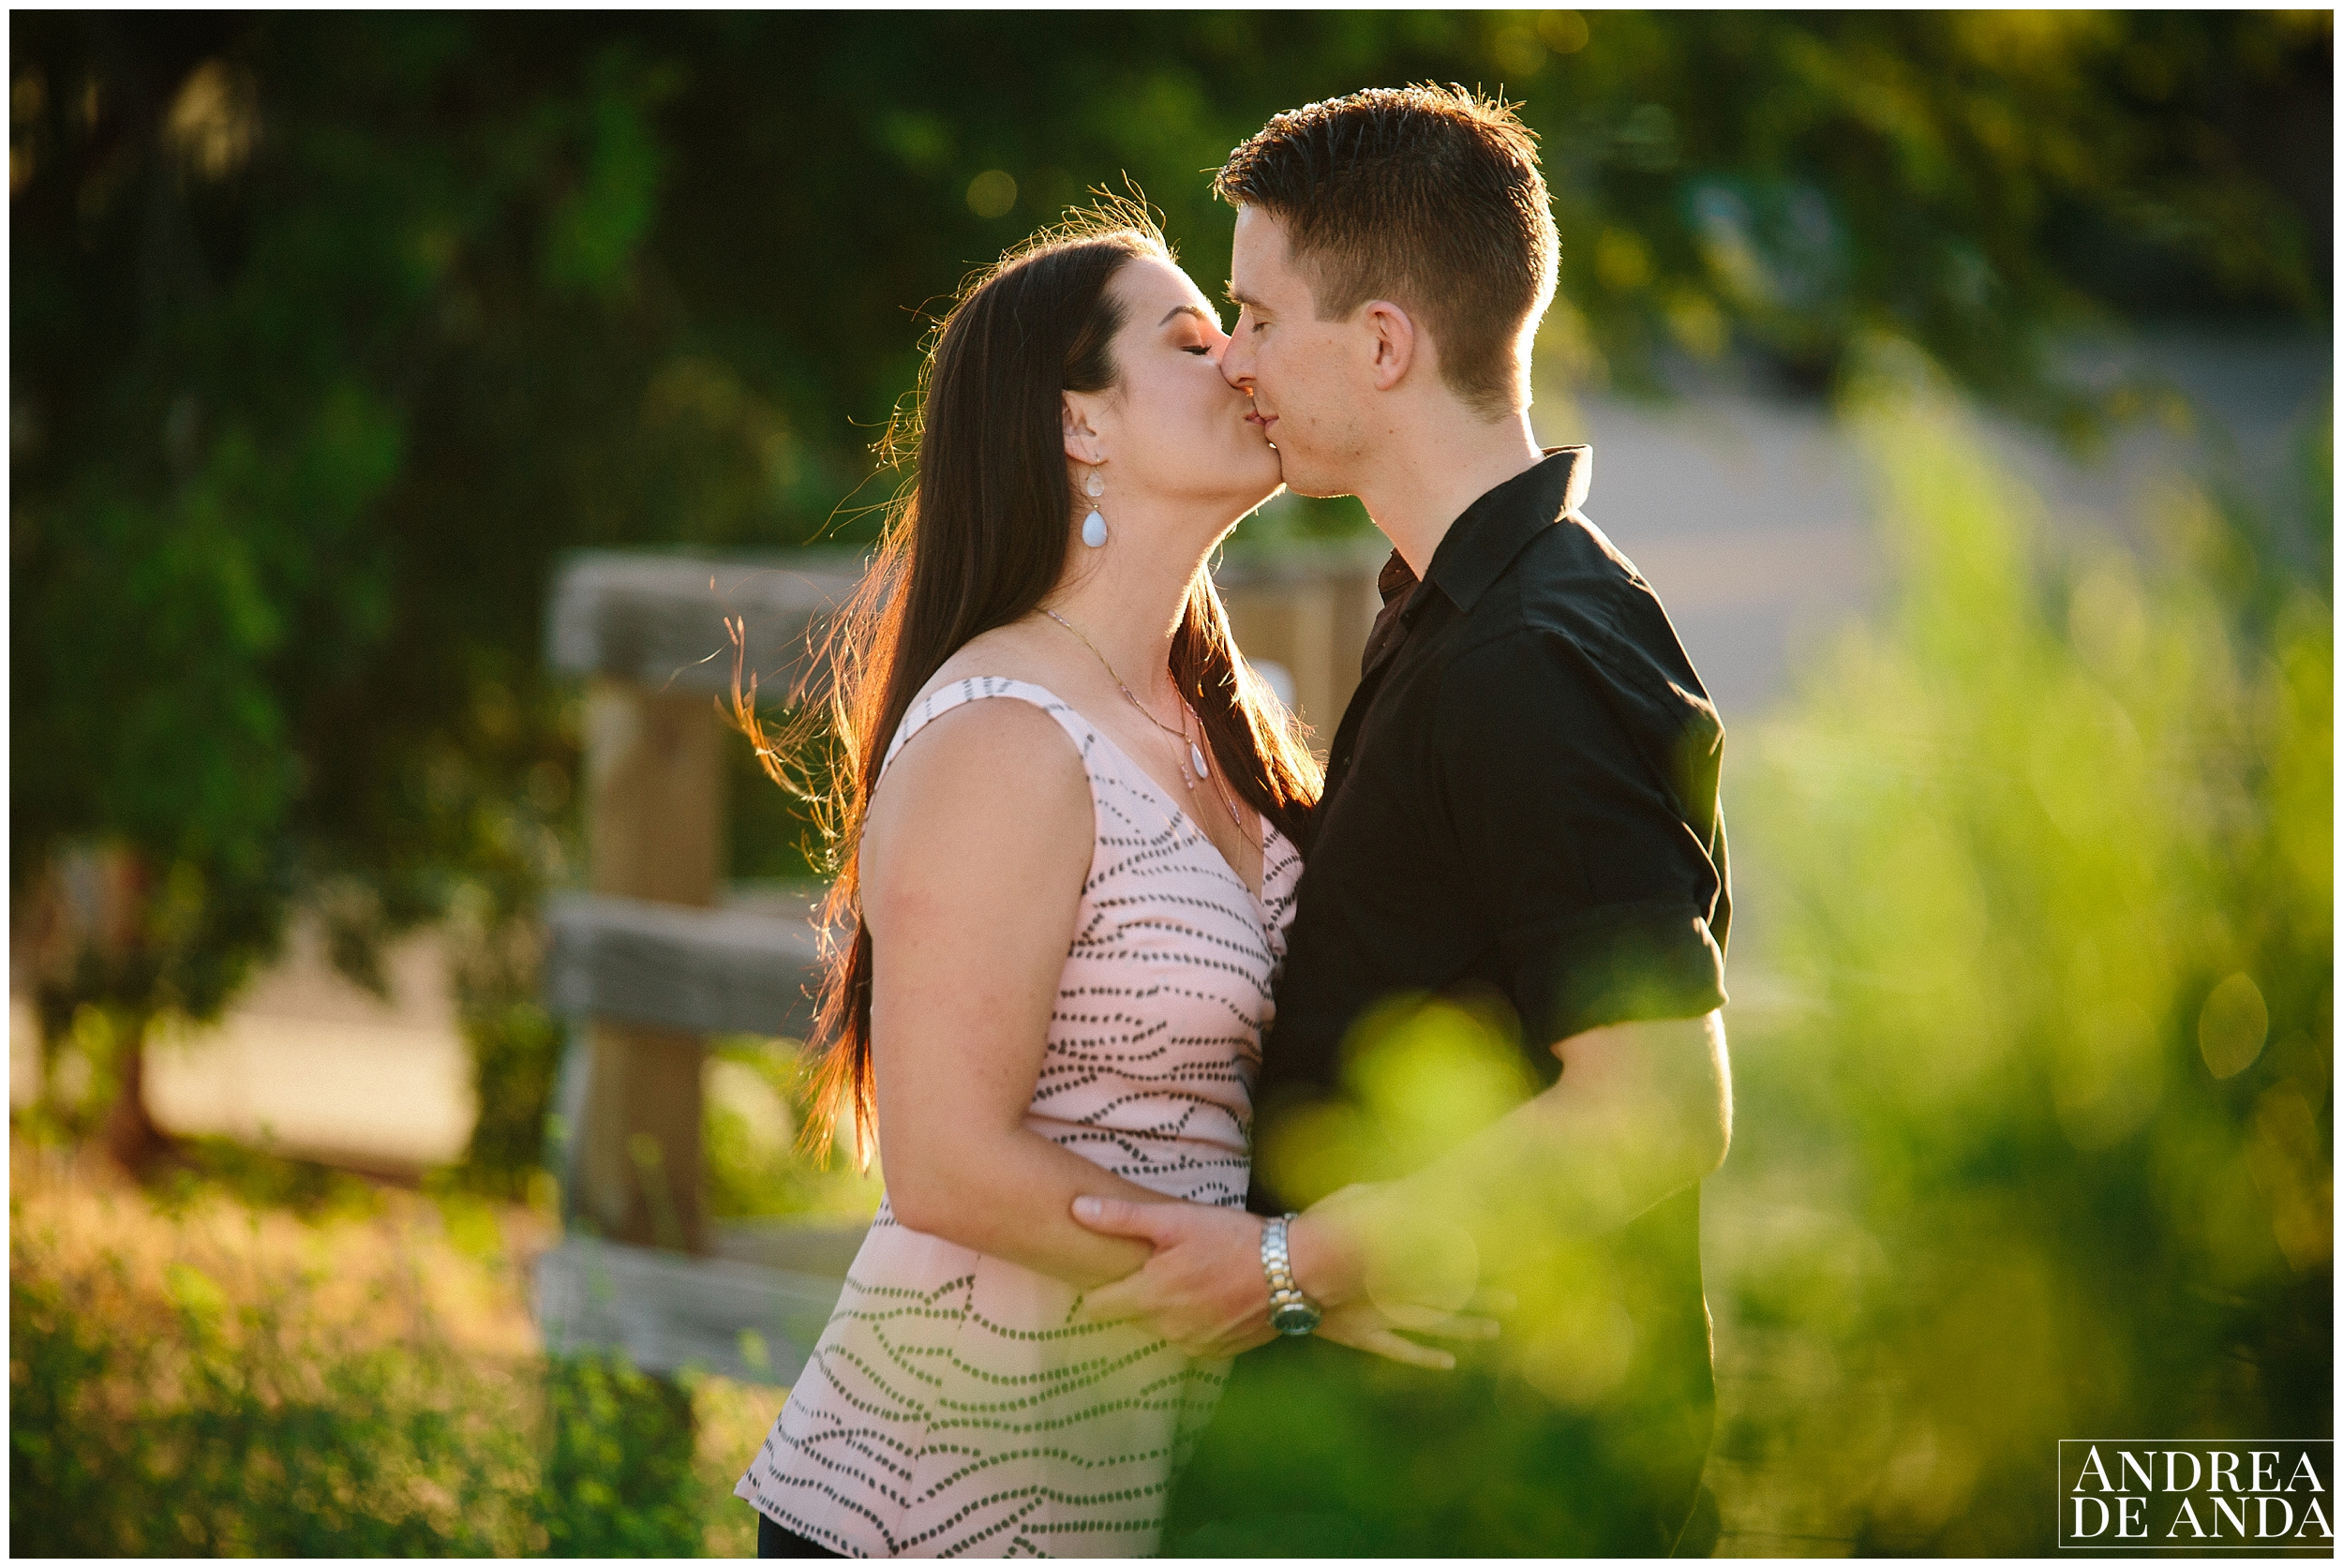 Beautiful Light and couple, Engagement session Orcutt Hills by Andrea de Anda Photography